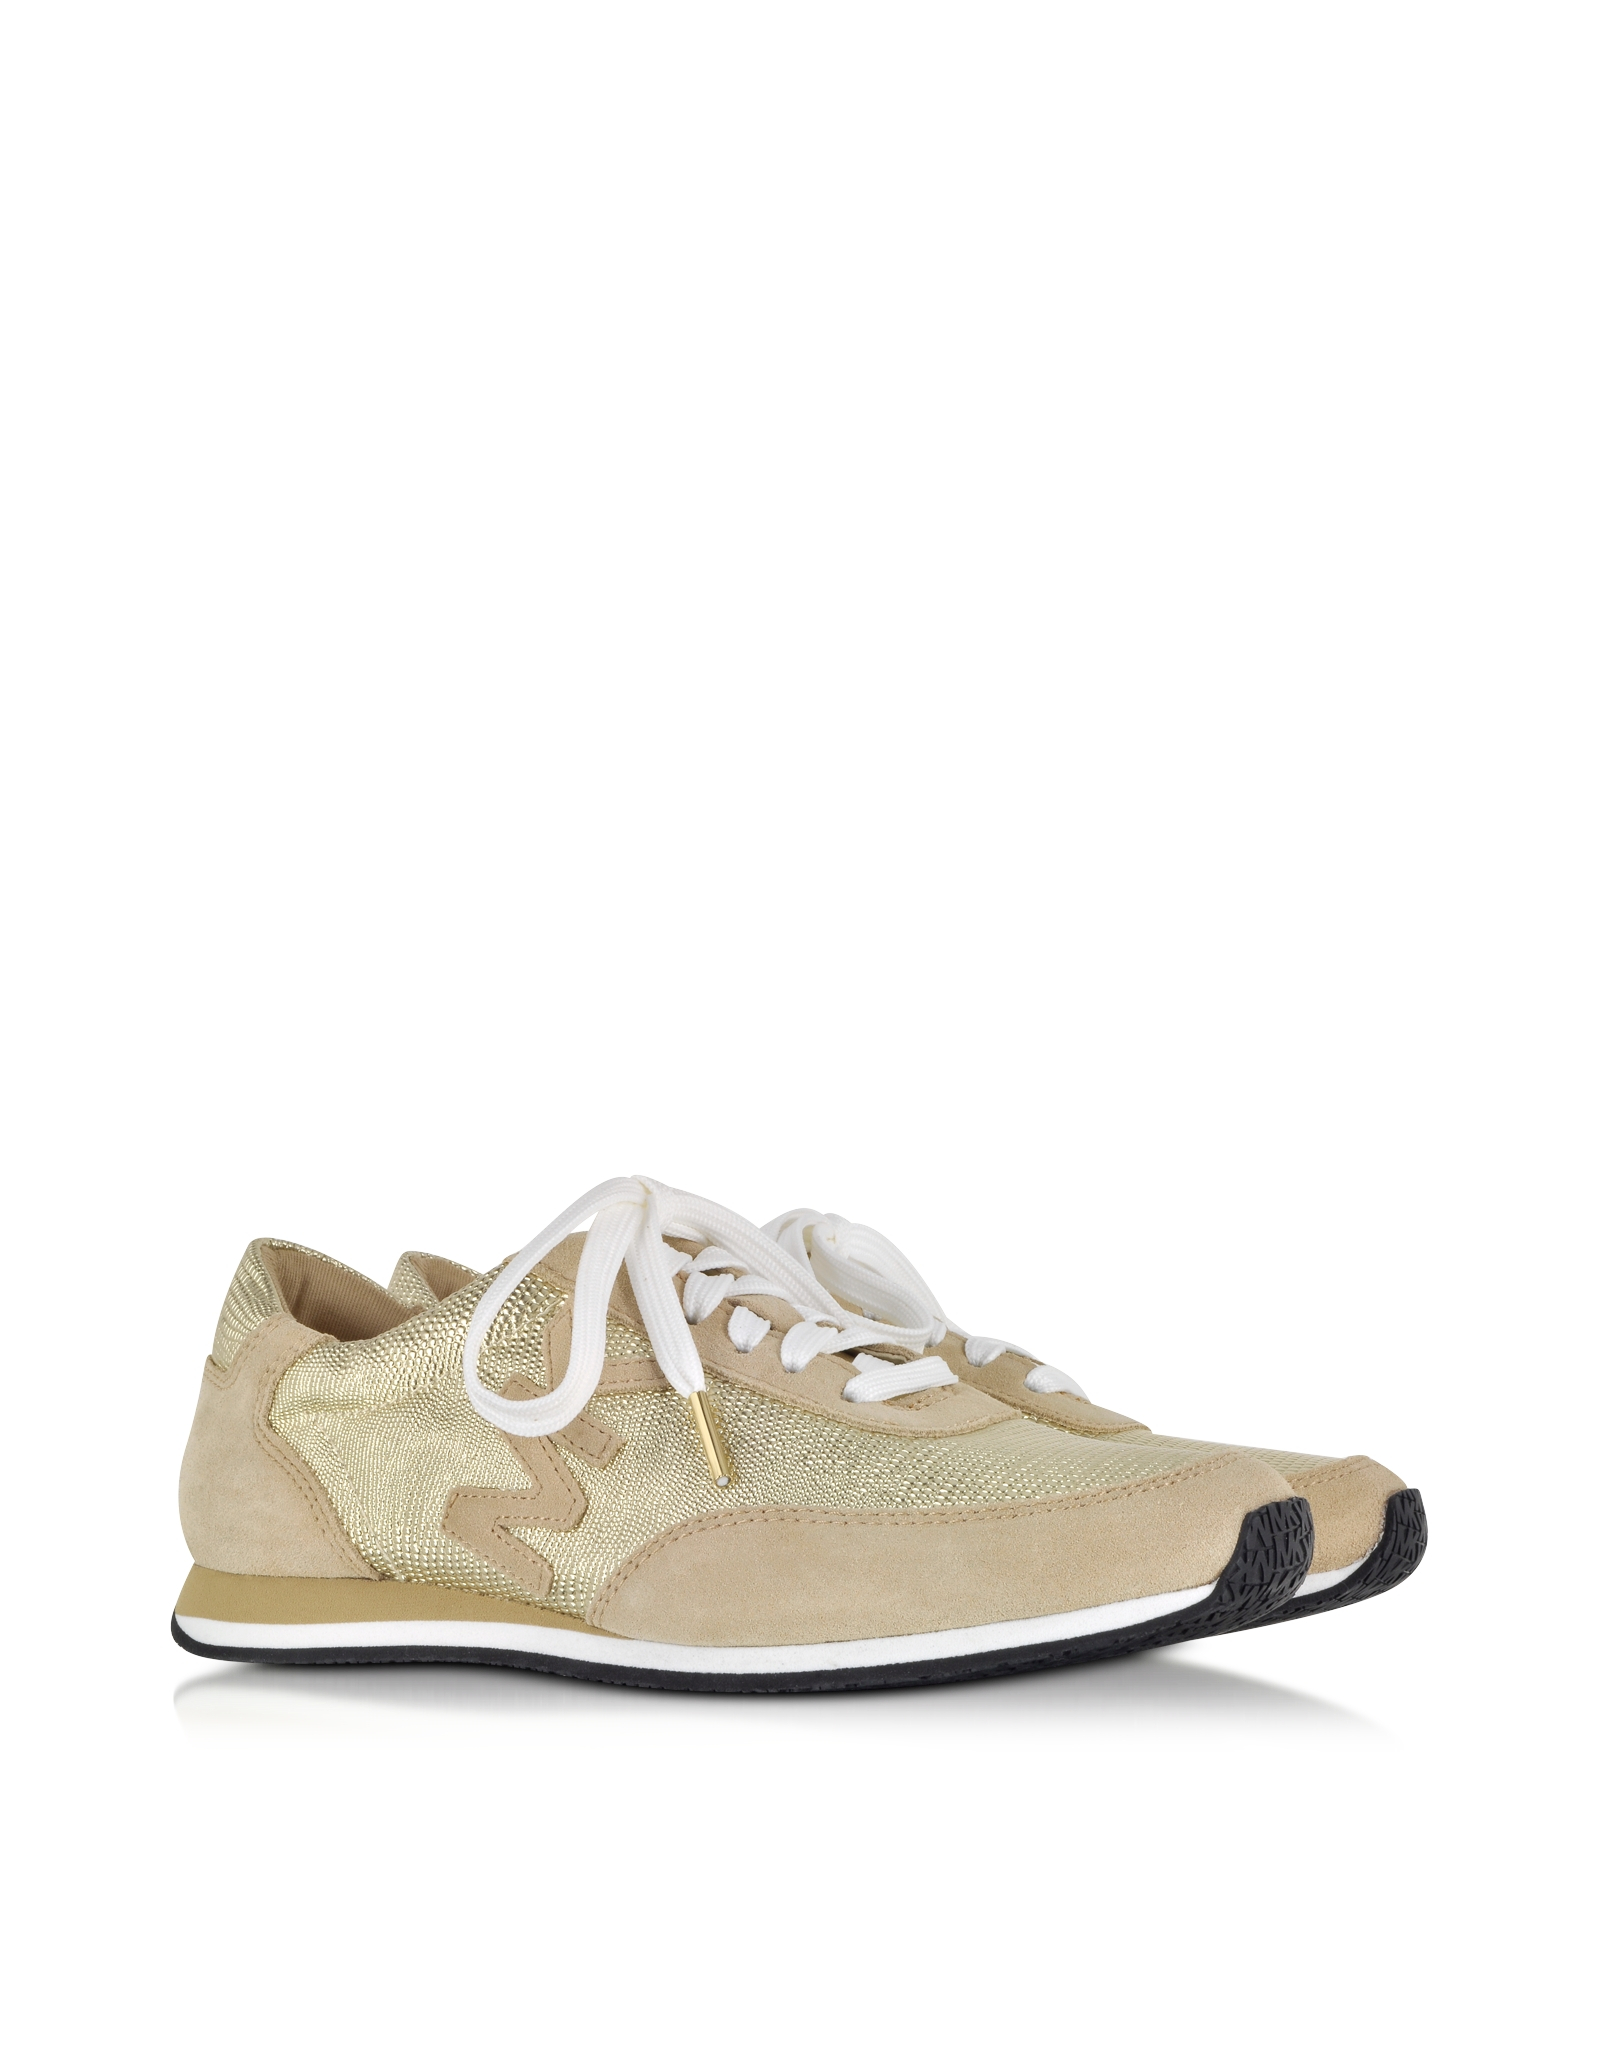 febc76470c41 Michael Kors Stanton Leather And Suede Gold Sneaker in Metallic - Lyst